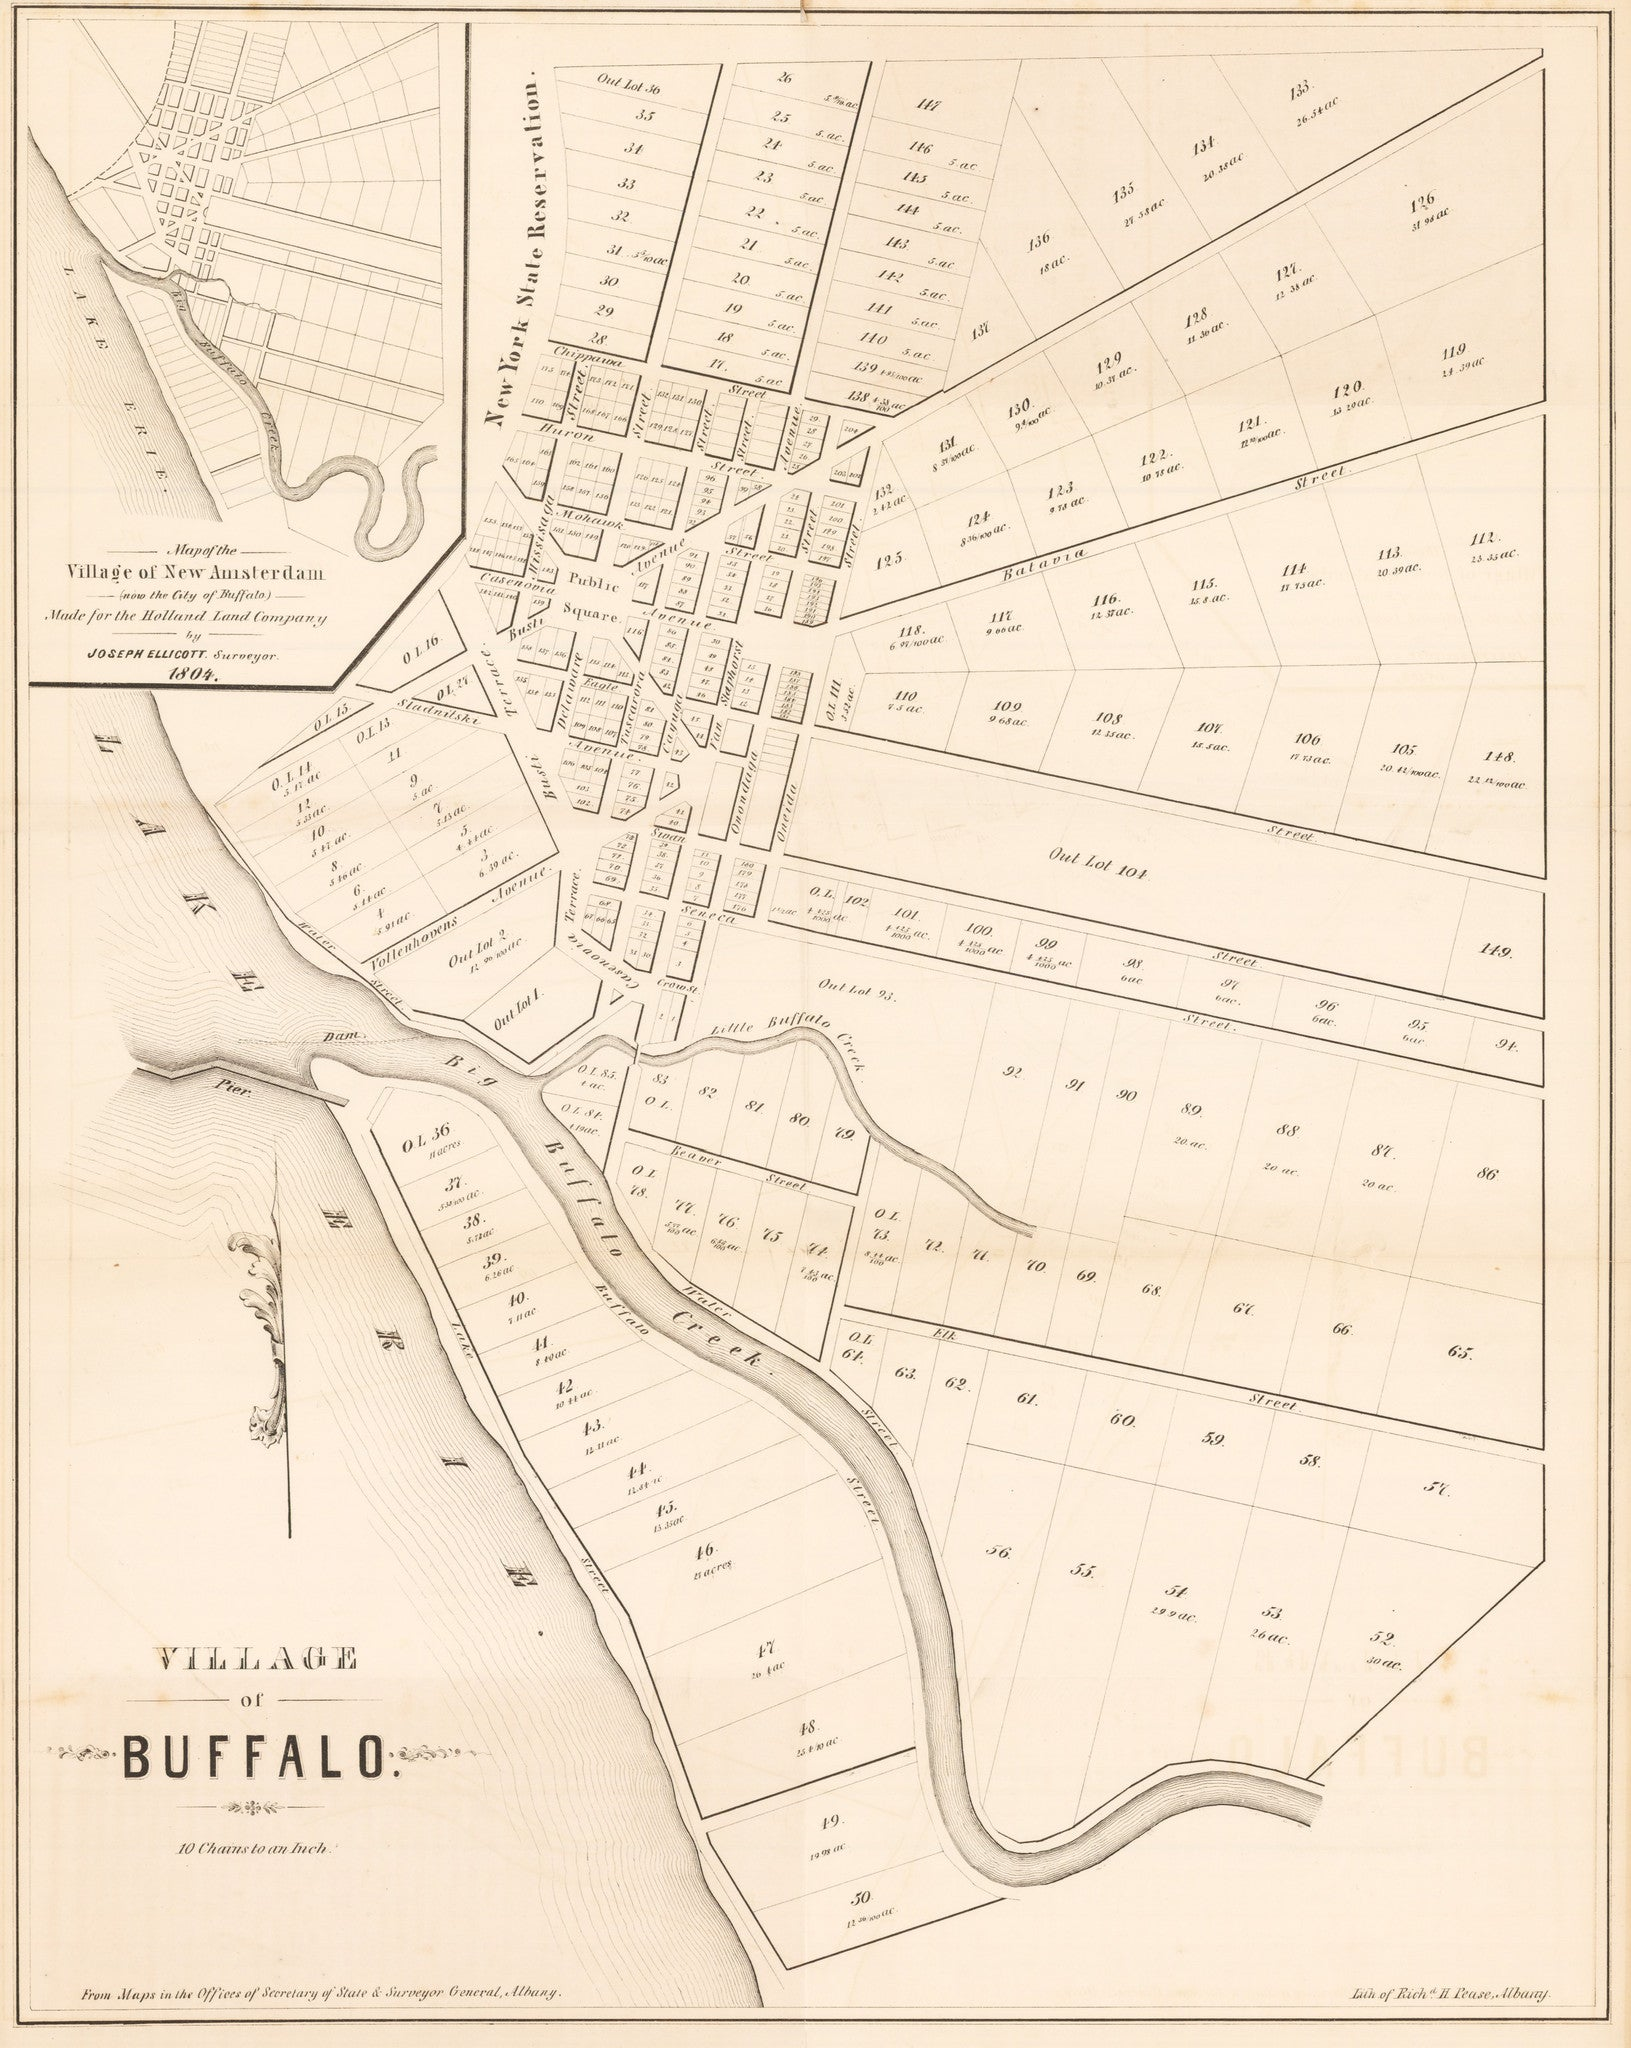 1804 Village of Buffalo on wind point map, the atlanta map, niagara falls map, st francis map, watertown map, rochester map, utica map, yellowstone river map, cincinnati map, toledo map, boston map, new york map, cooperstown ny on a map, fair grove map, indianapolis map, grand island map, college at brockport map, jacksonville map, blooming grove map, town of wheatfield map,